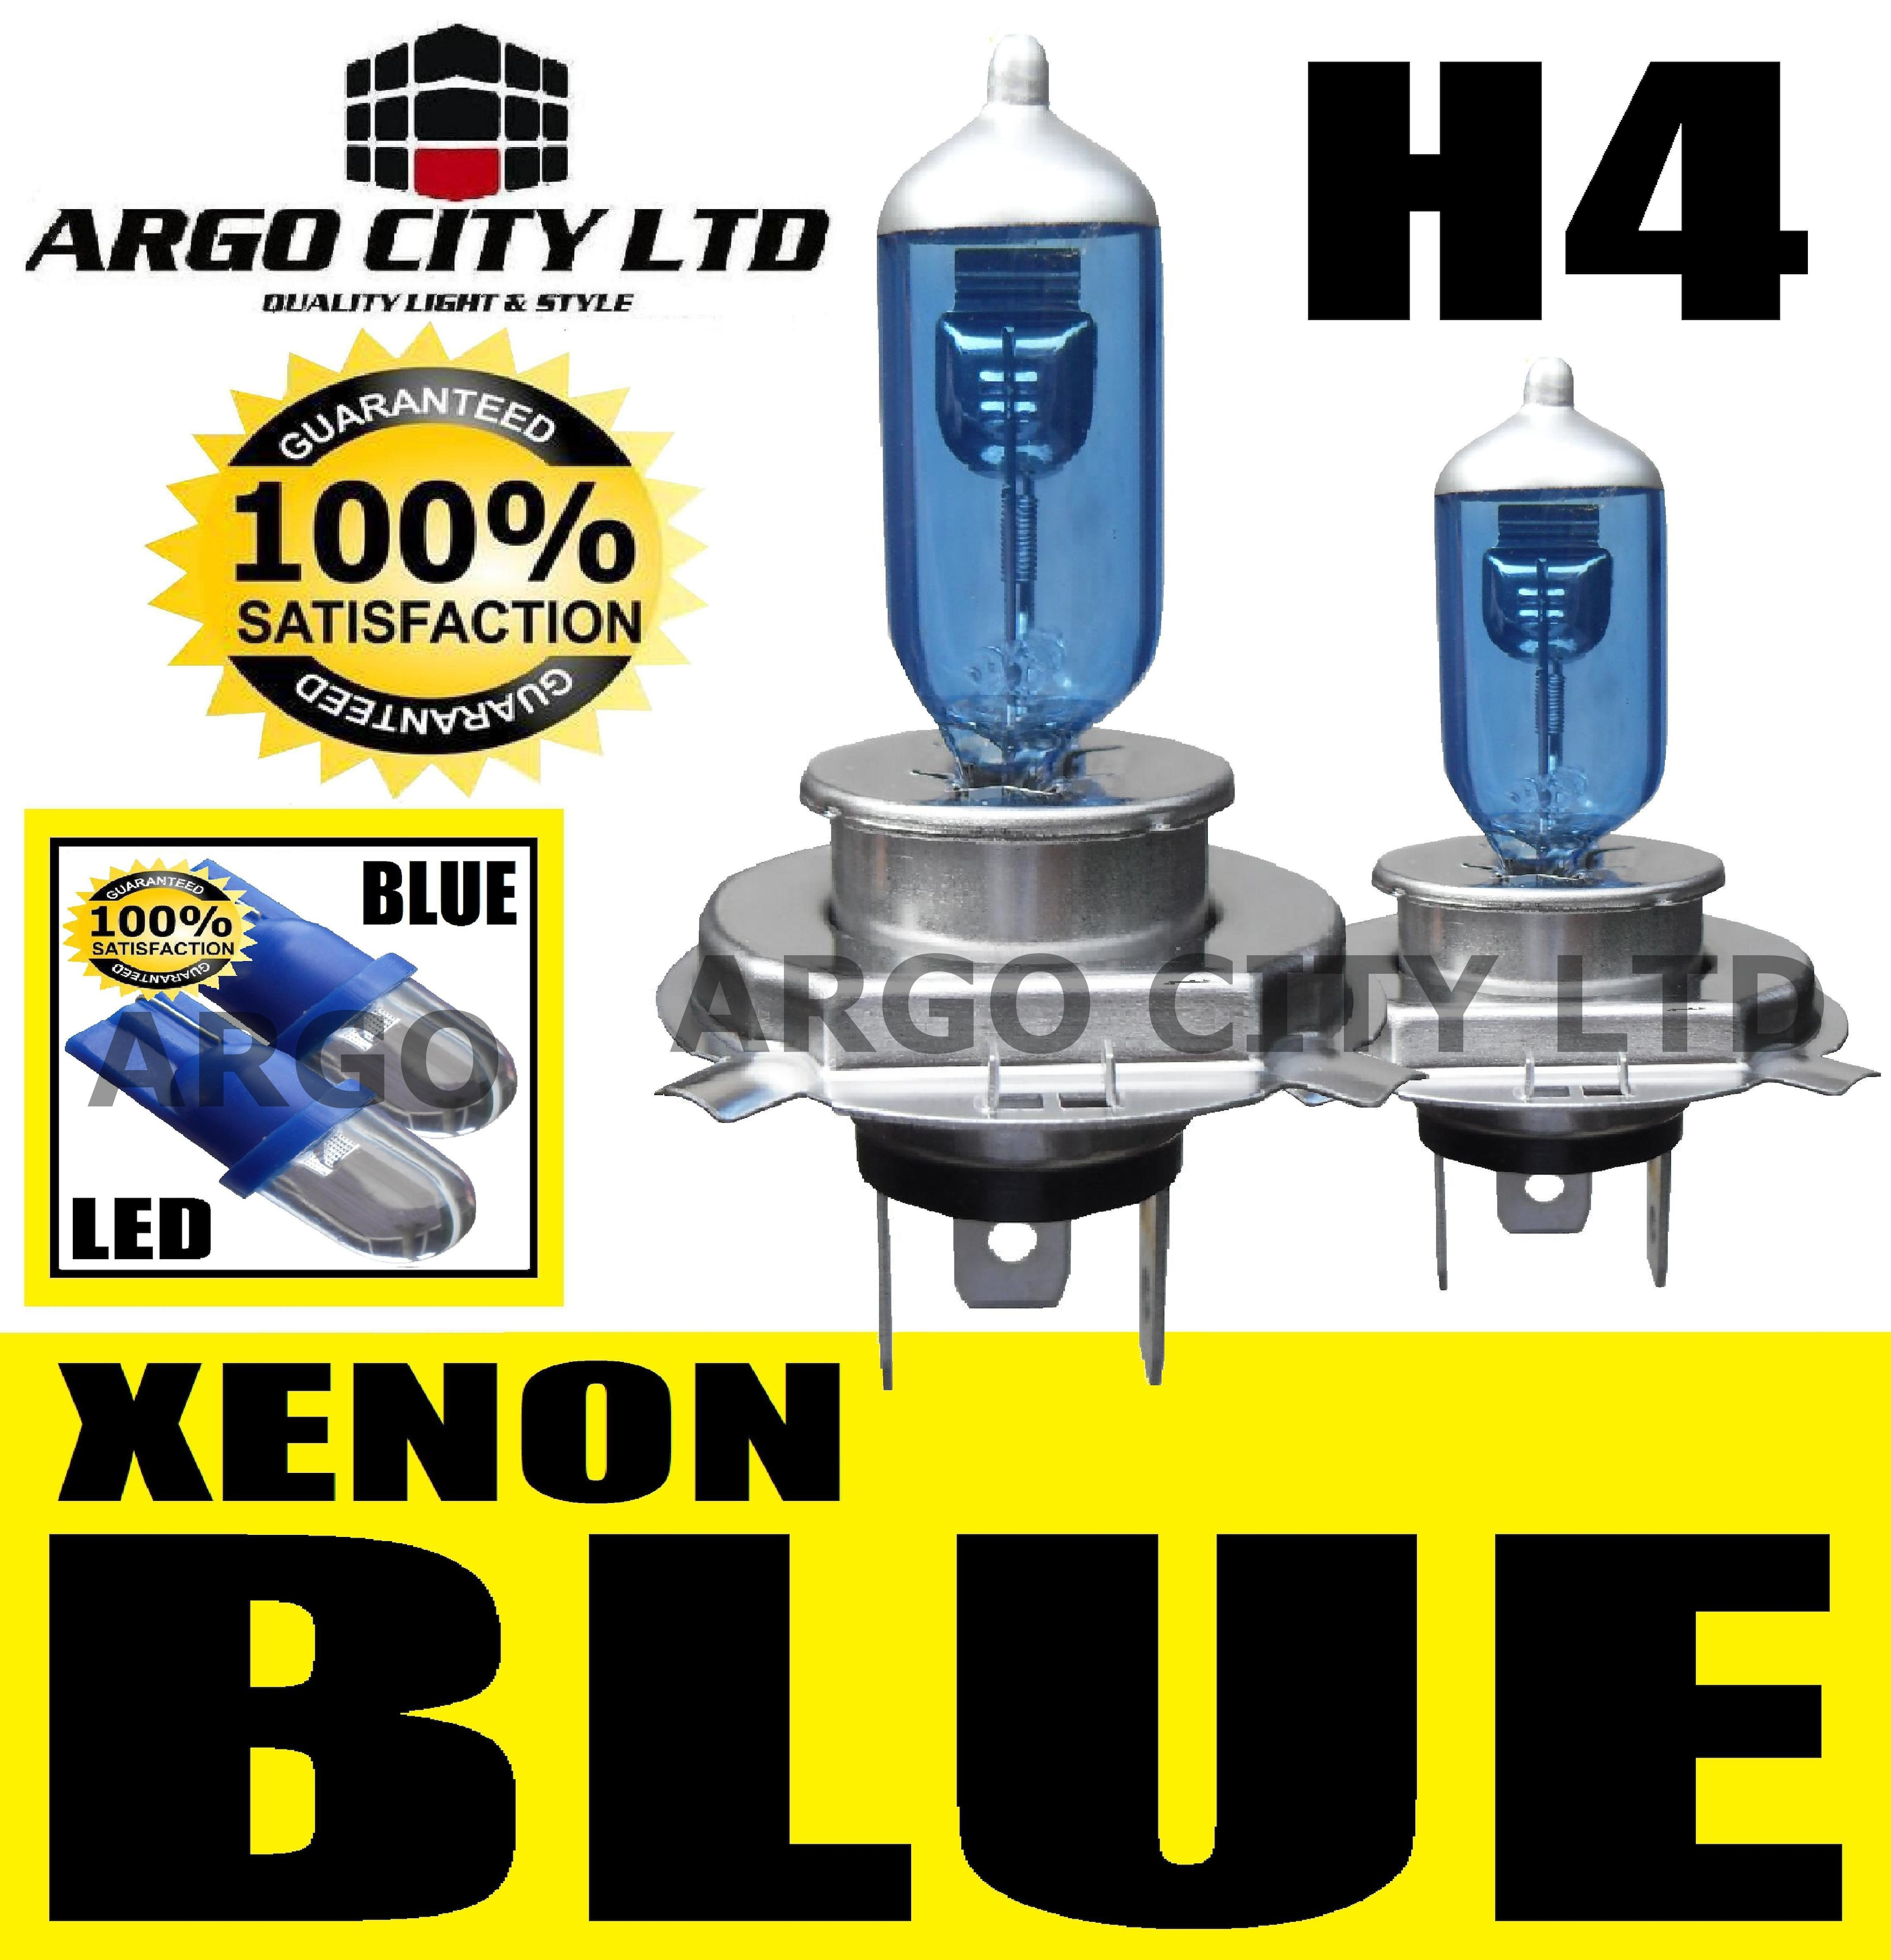 H4 XENON ICE BLUE 55W 472 HEADLIGHT BULBS HARLEY DAVIDSON FXST 1340 Softail